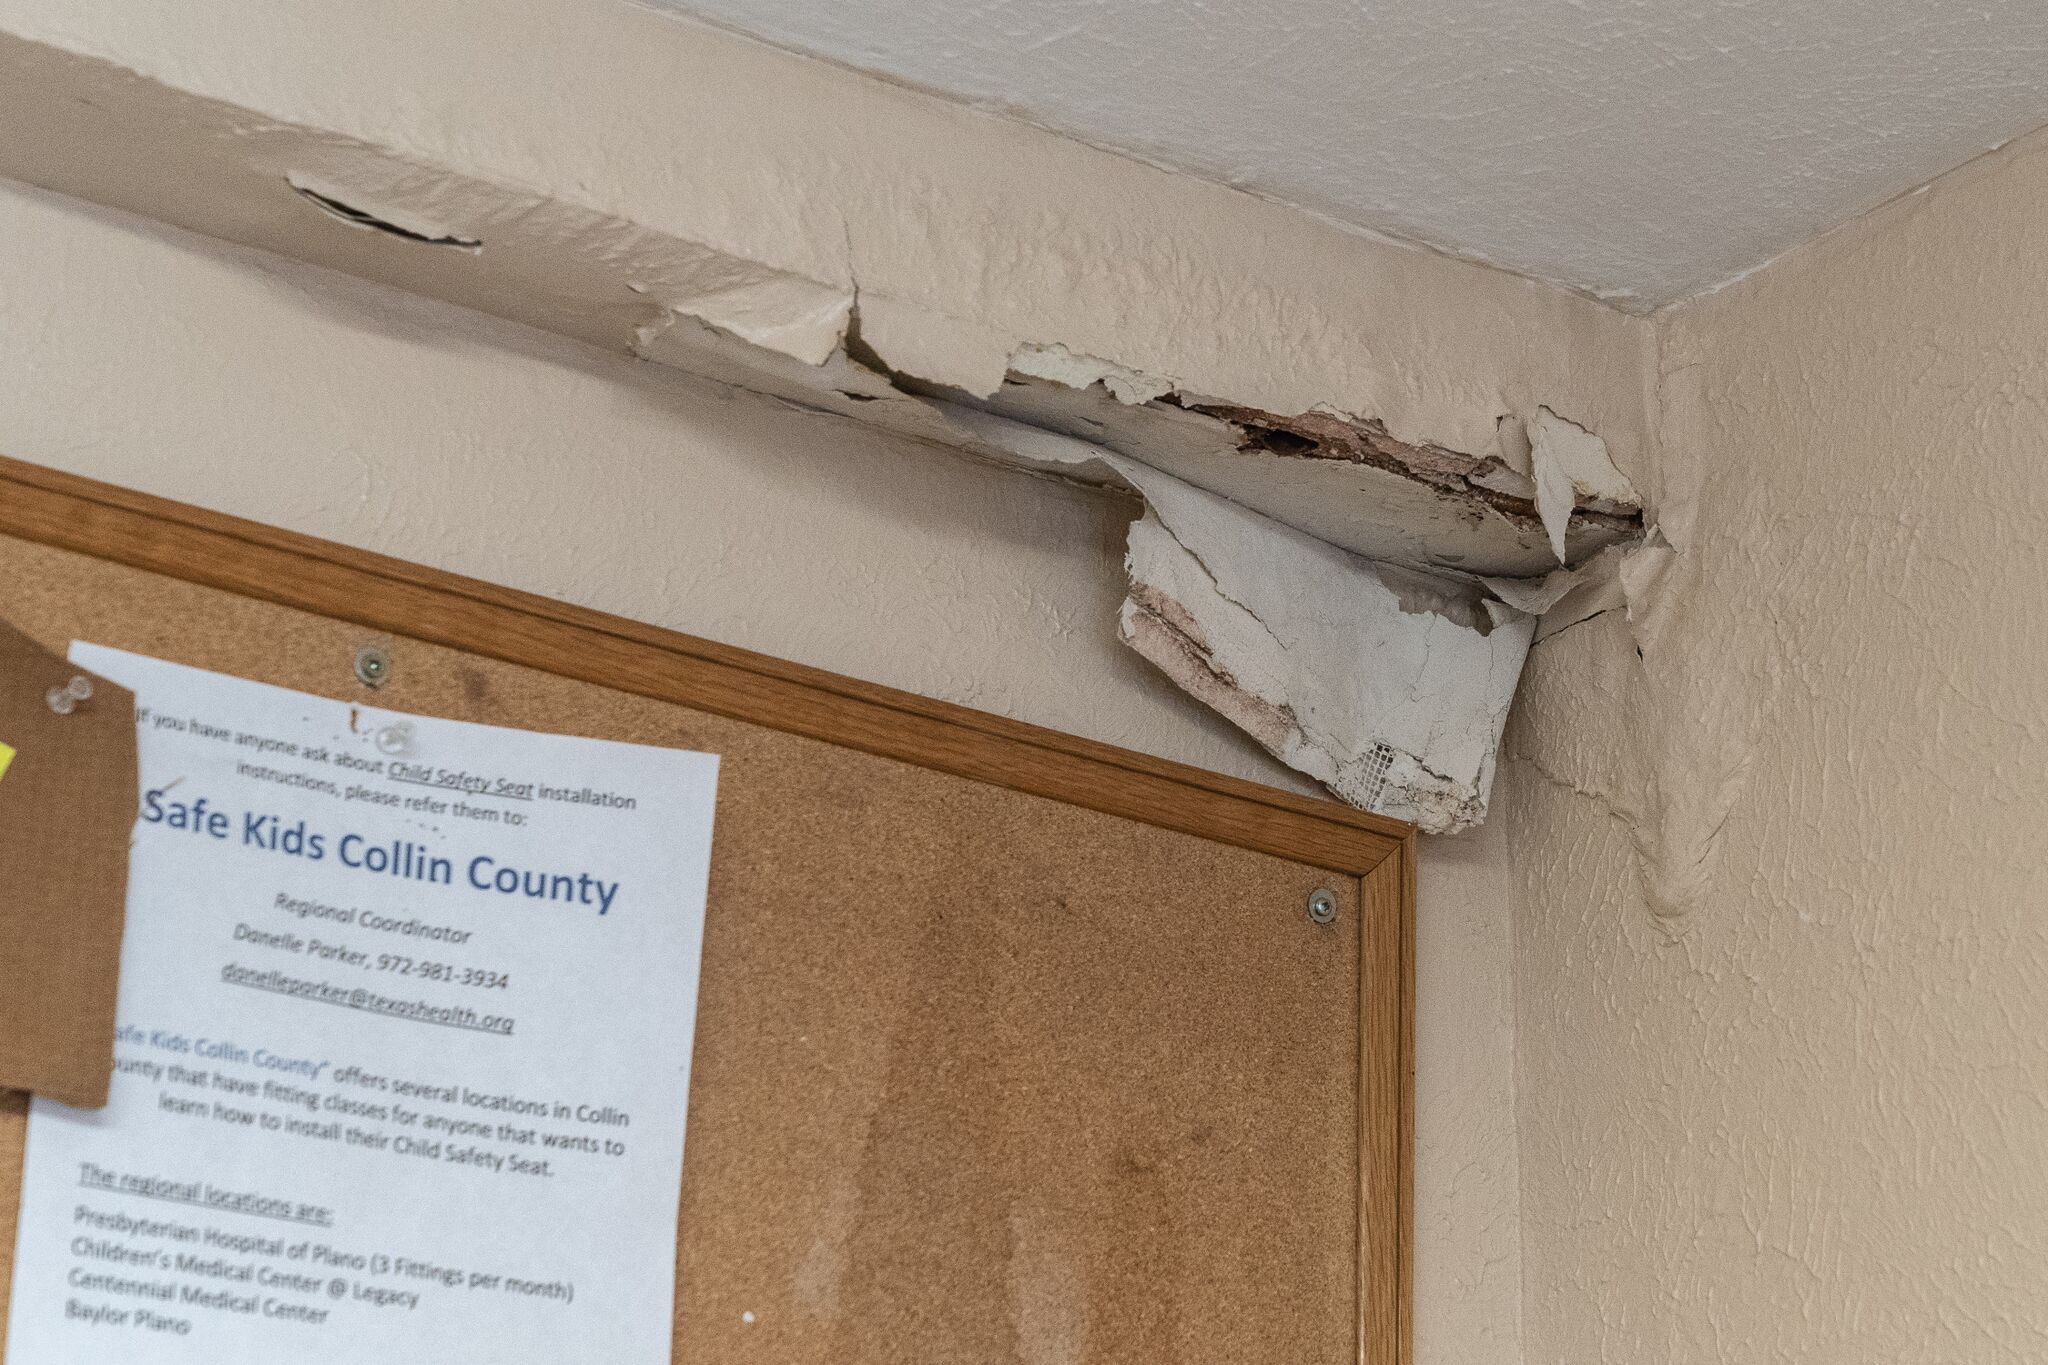 Water leaks have damaged many interior walls.